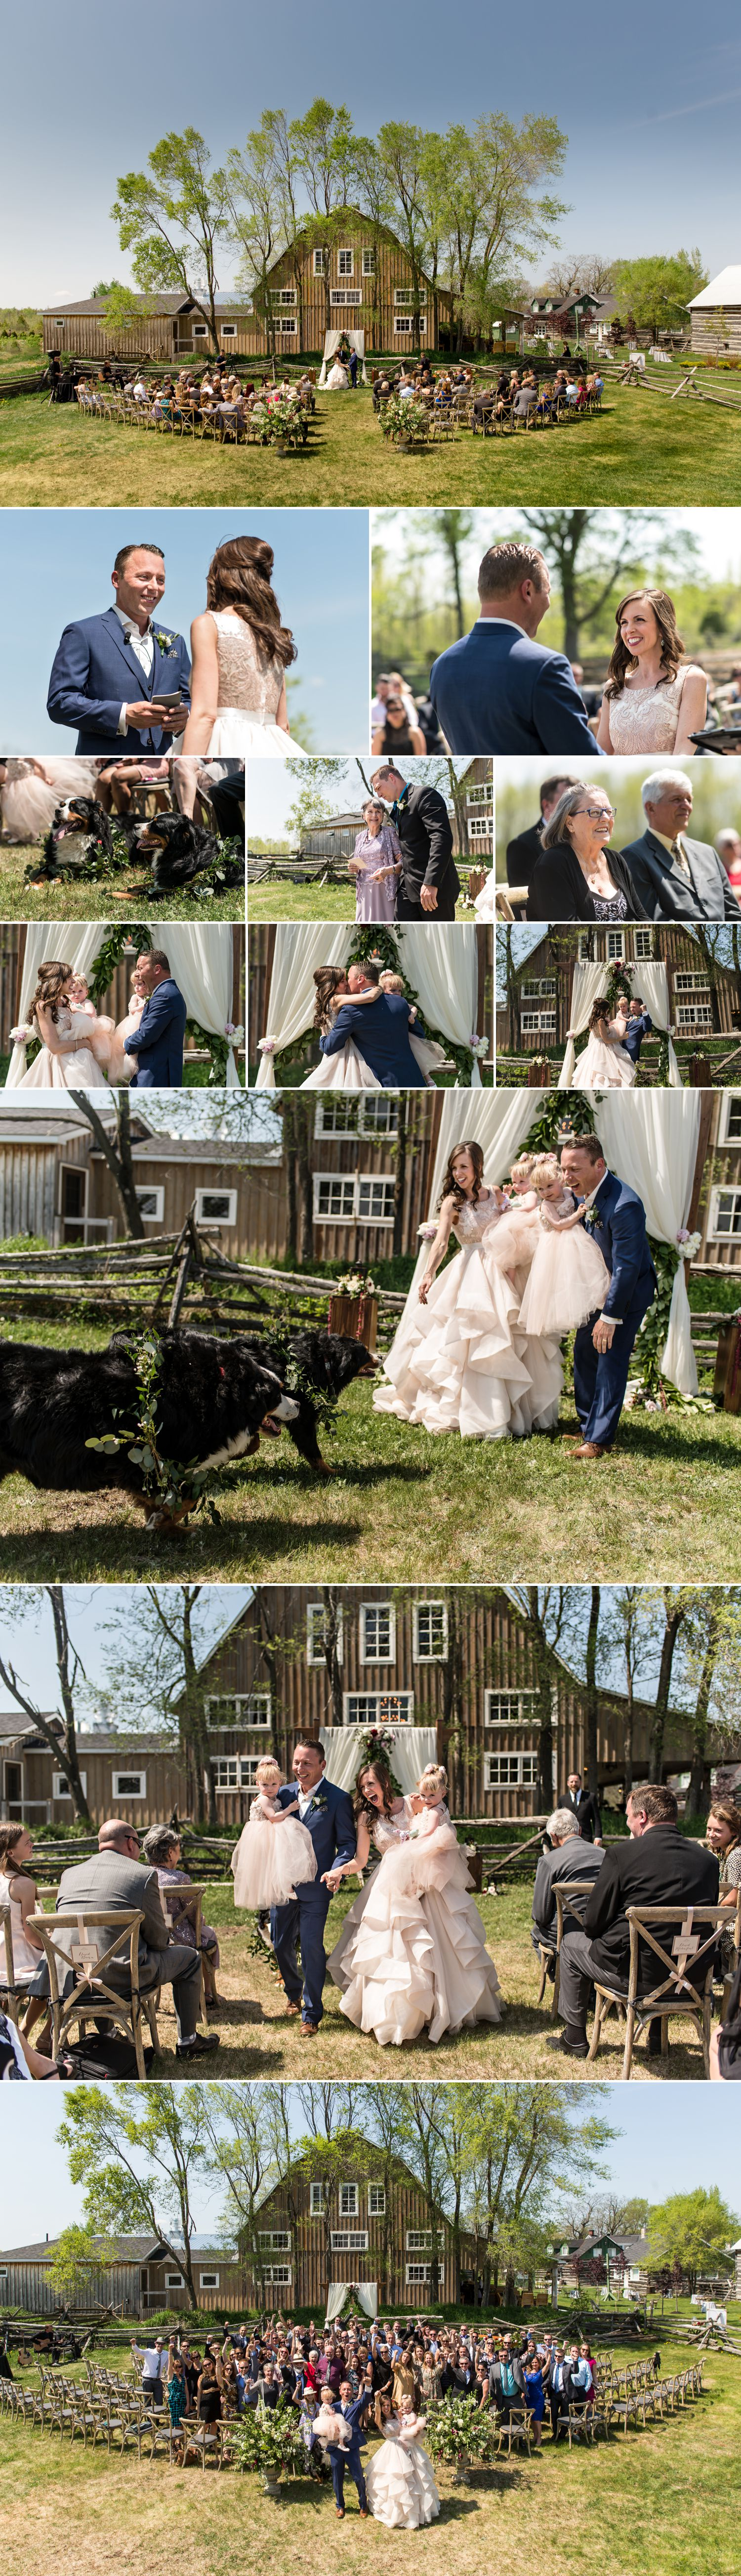 candid wedding ceremony moments at a wedding at stonefields carleton place ontario